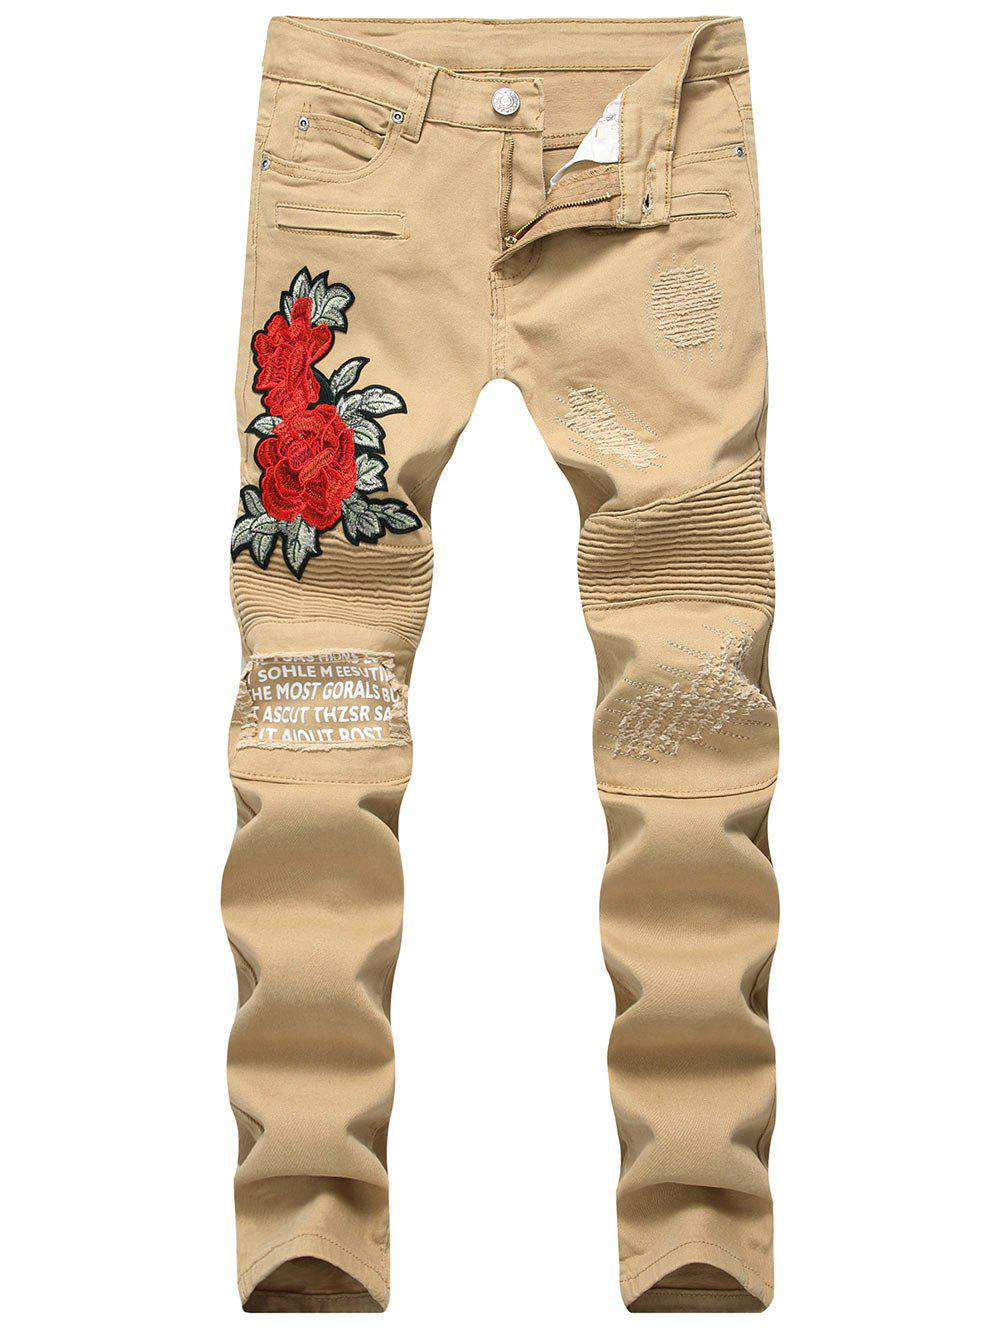 New Floral Embroidery Distressed Biker Jeans